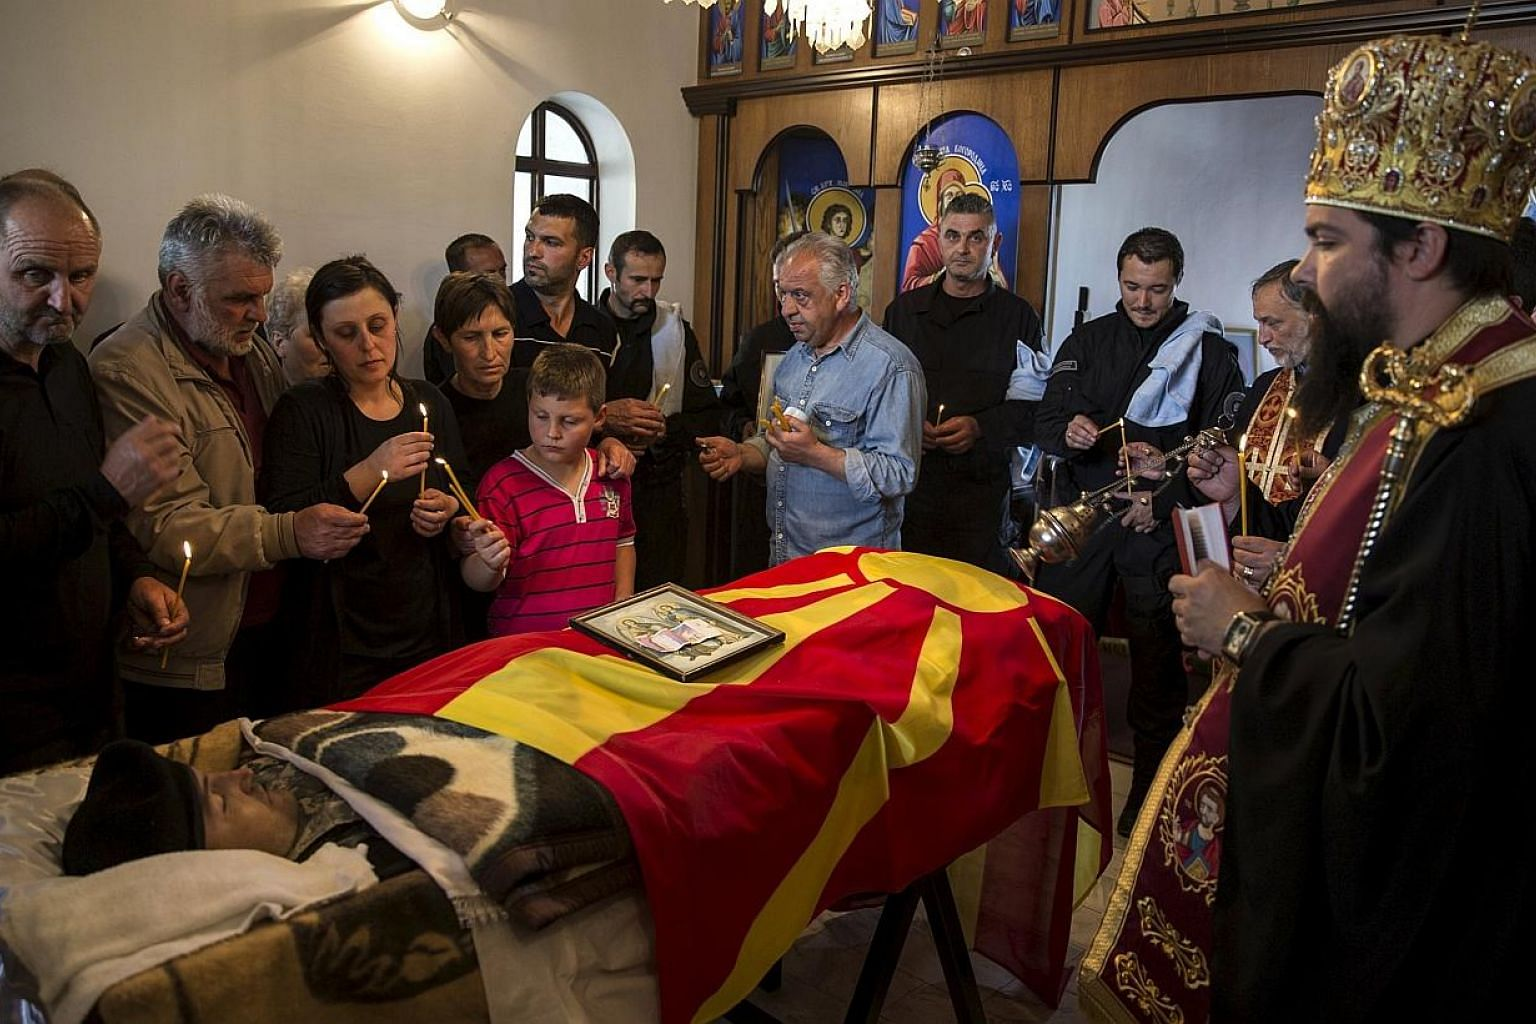 Relatives of policeman Zarko Kuzmanovski mourn next to his coffin draped with the Macedonian flag inside a church during his funeral in the village of Brvenica, Macedonia on Sunday. -- PHOTO: REUTERS